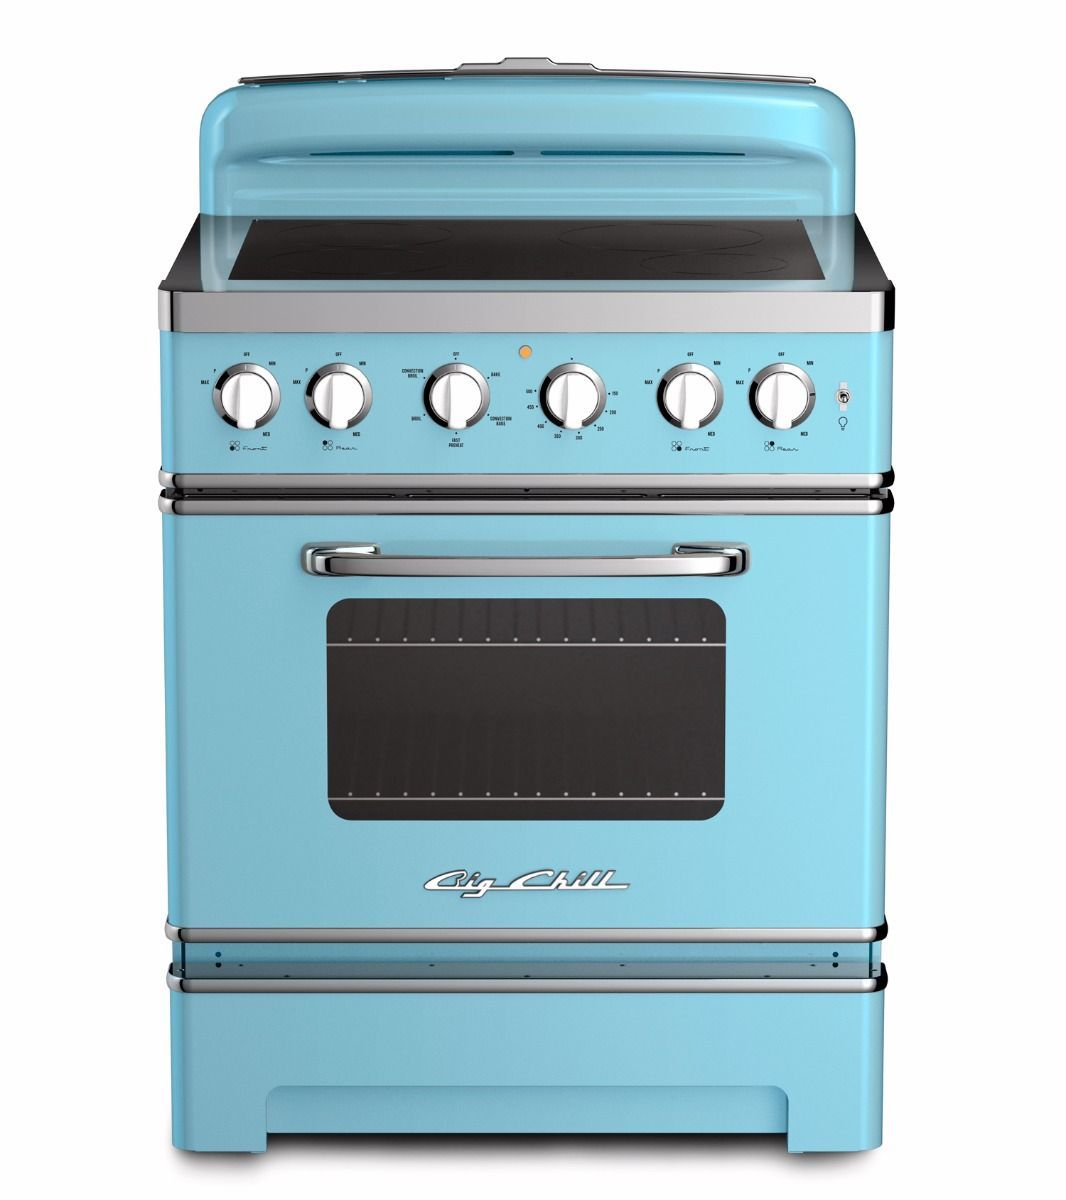 Retro Electric Induction Range In 2019 Home Cocina